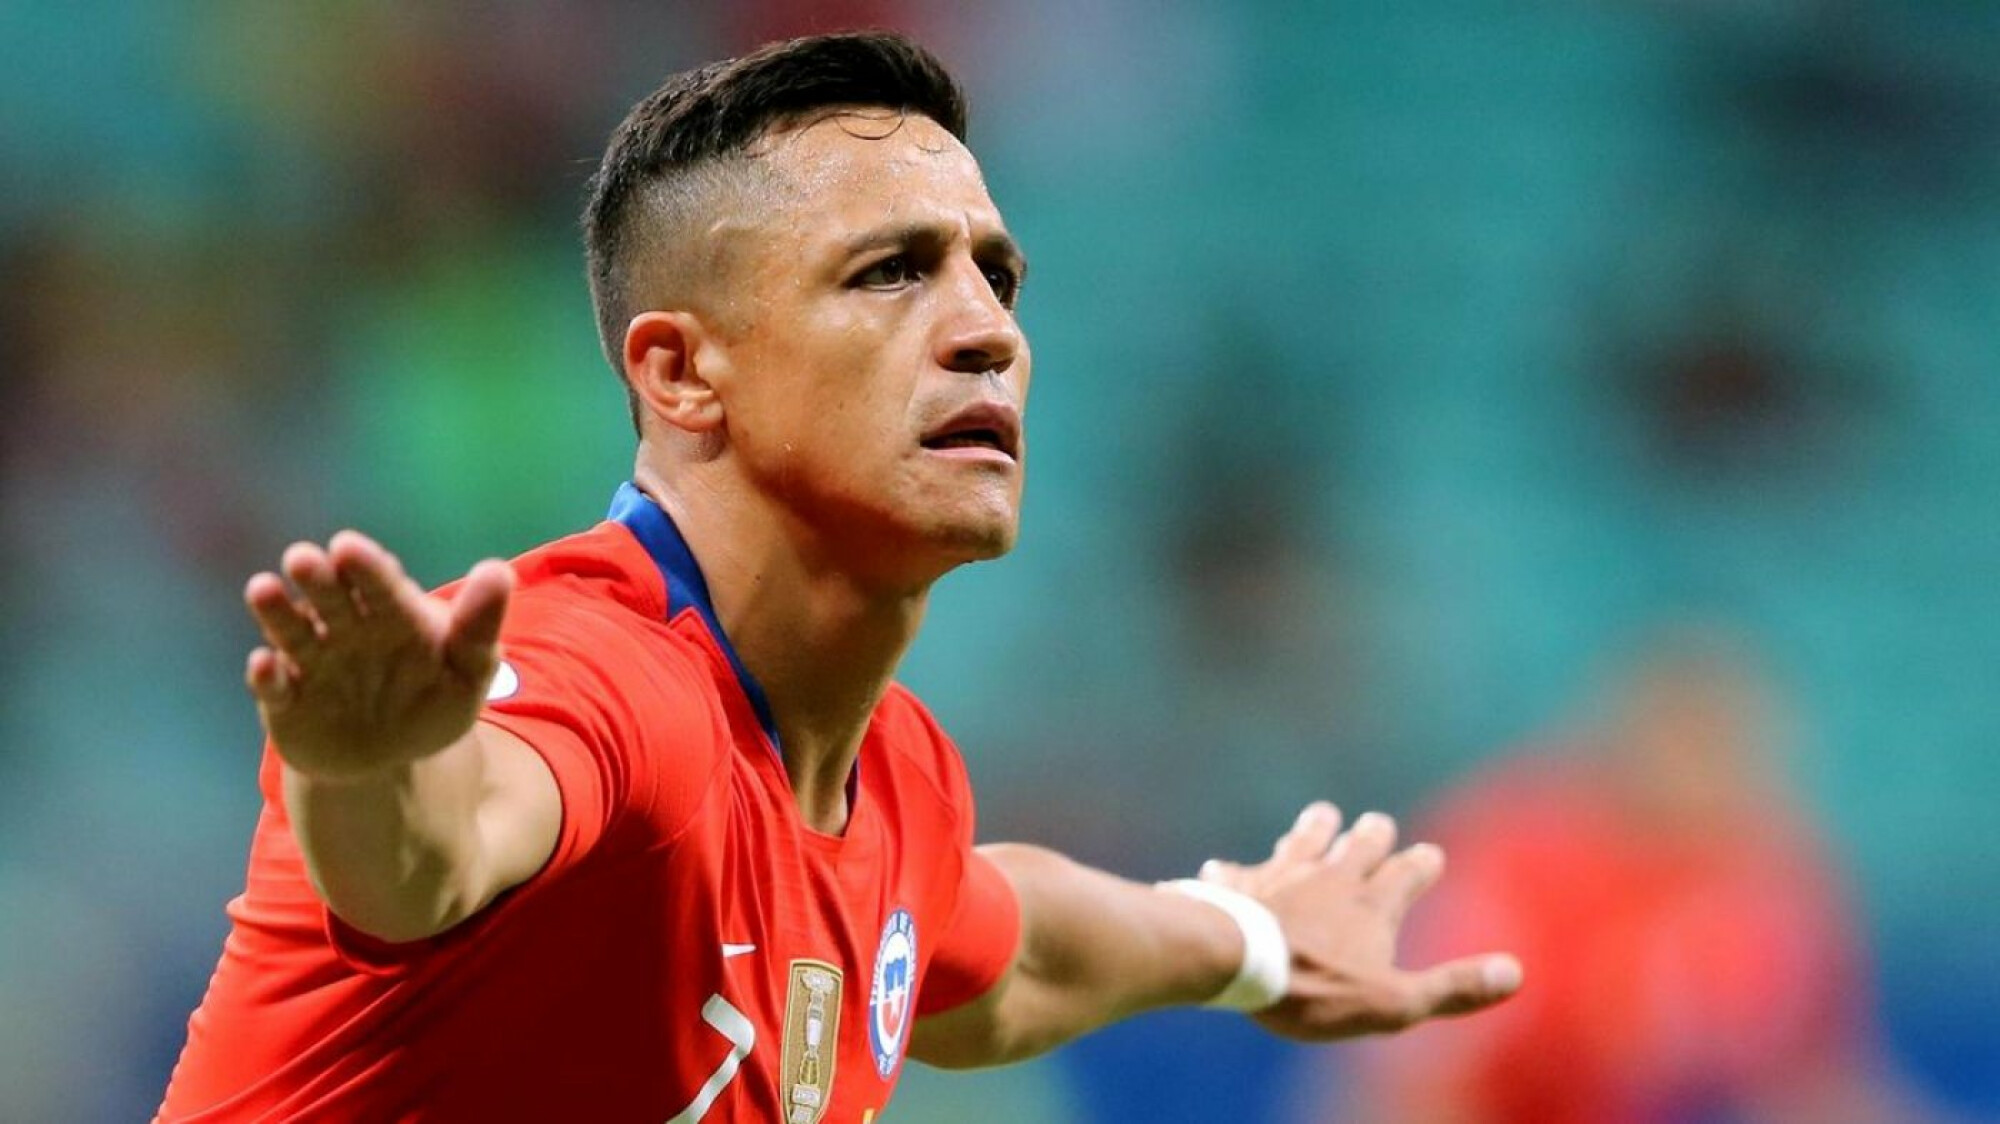 Alexis Sanchez puts Man Utd woes behind him, firing Chile into Copa America quarterfinals